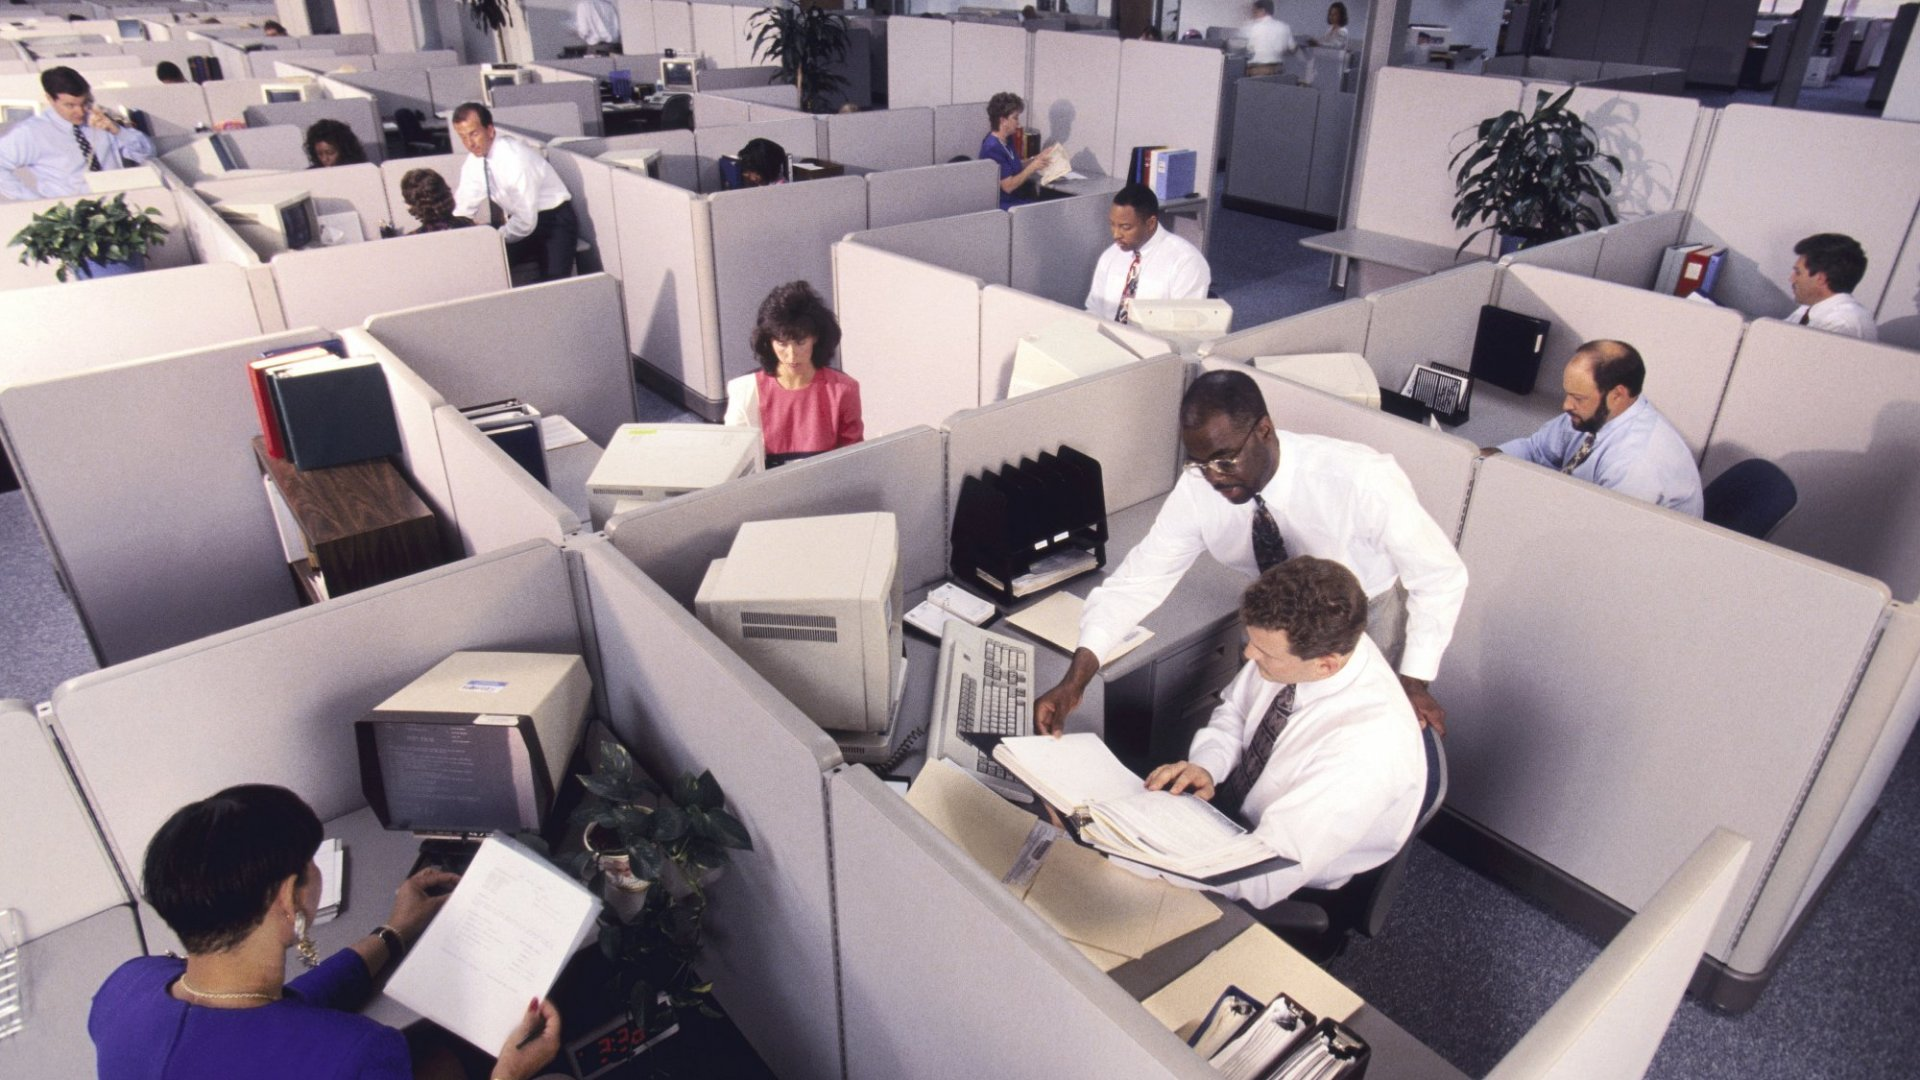 Here's How To Find Happiness While Working In A Cubicle All Day